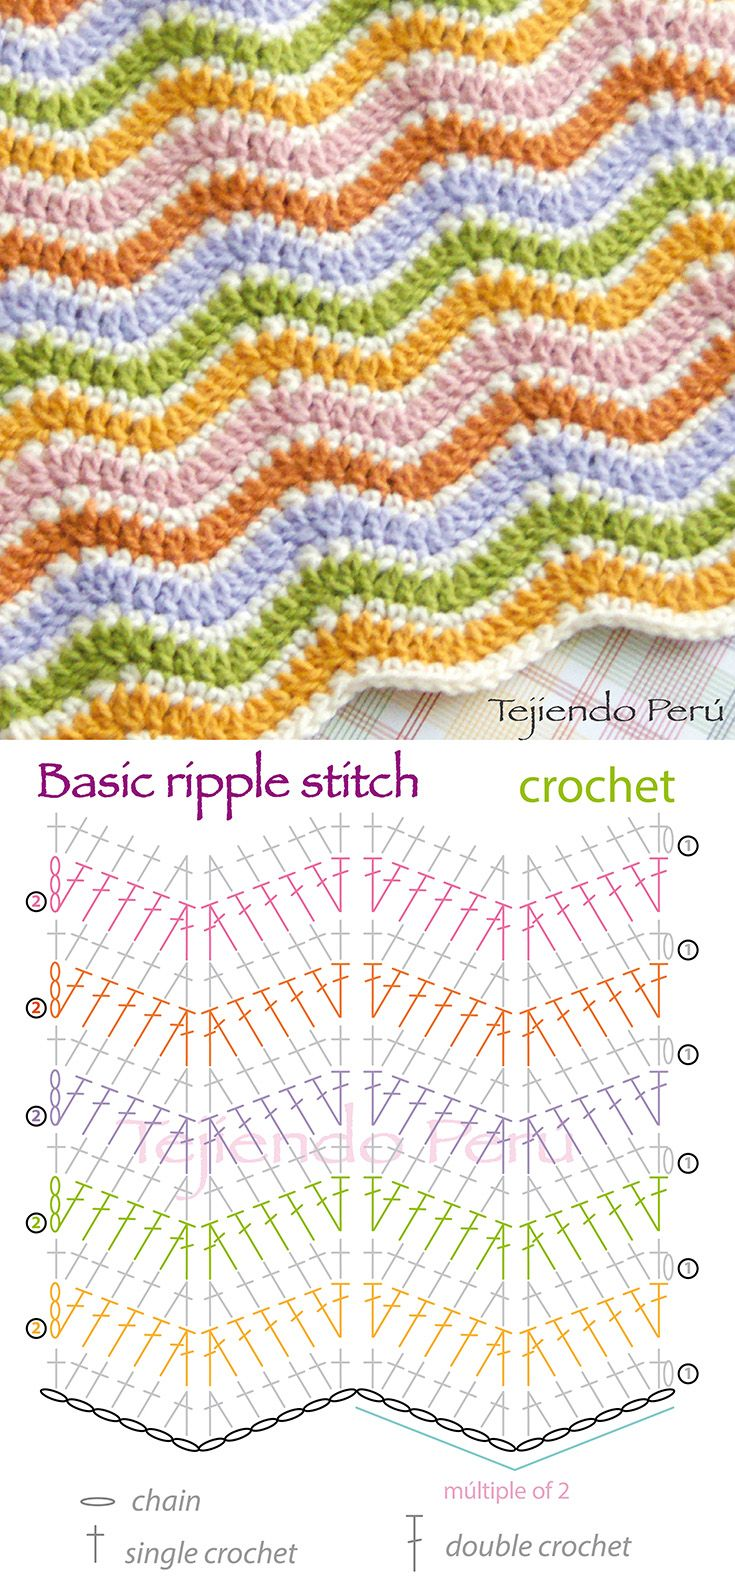 Colcha de Crochê Inspiração Colorida Ziguezague - / Crocheted than Quilt Inspiration Colorful Zigzag -